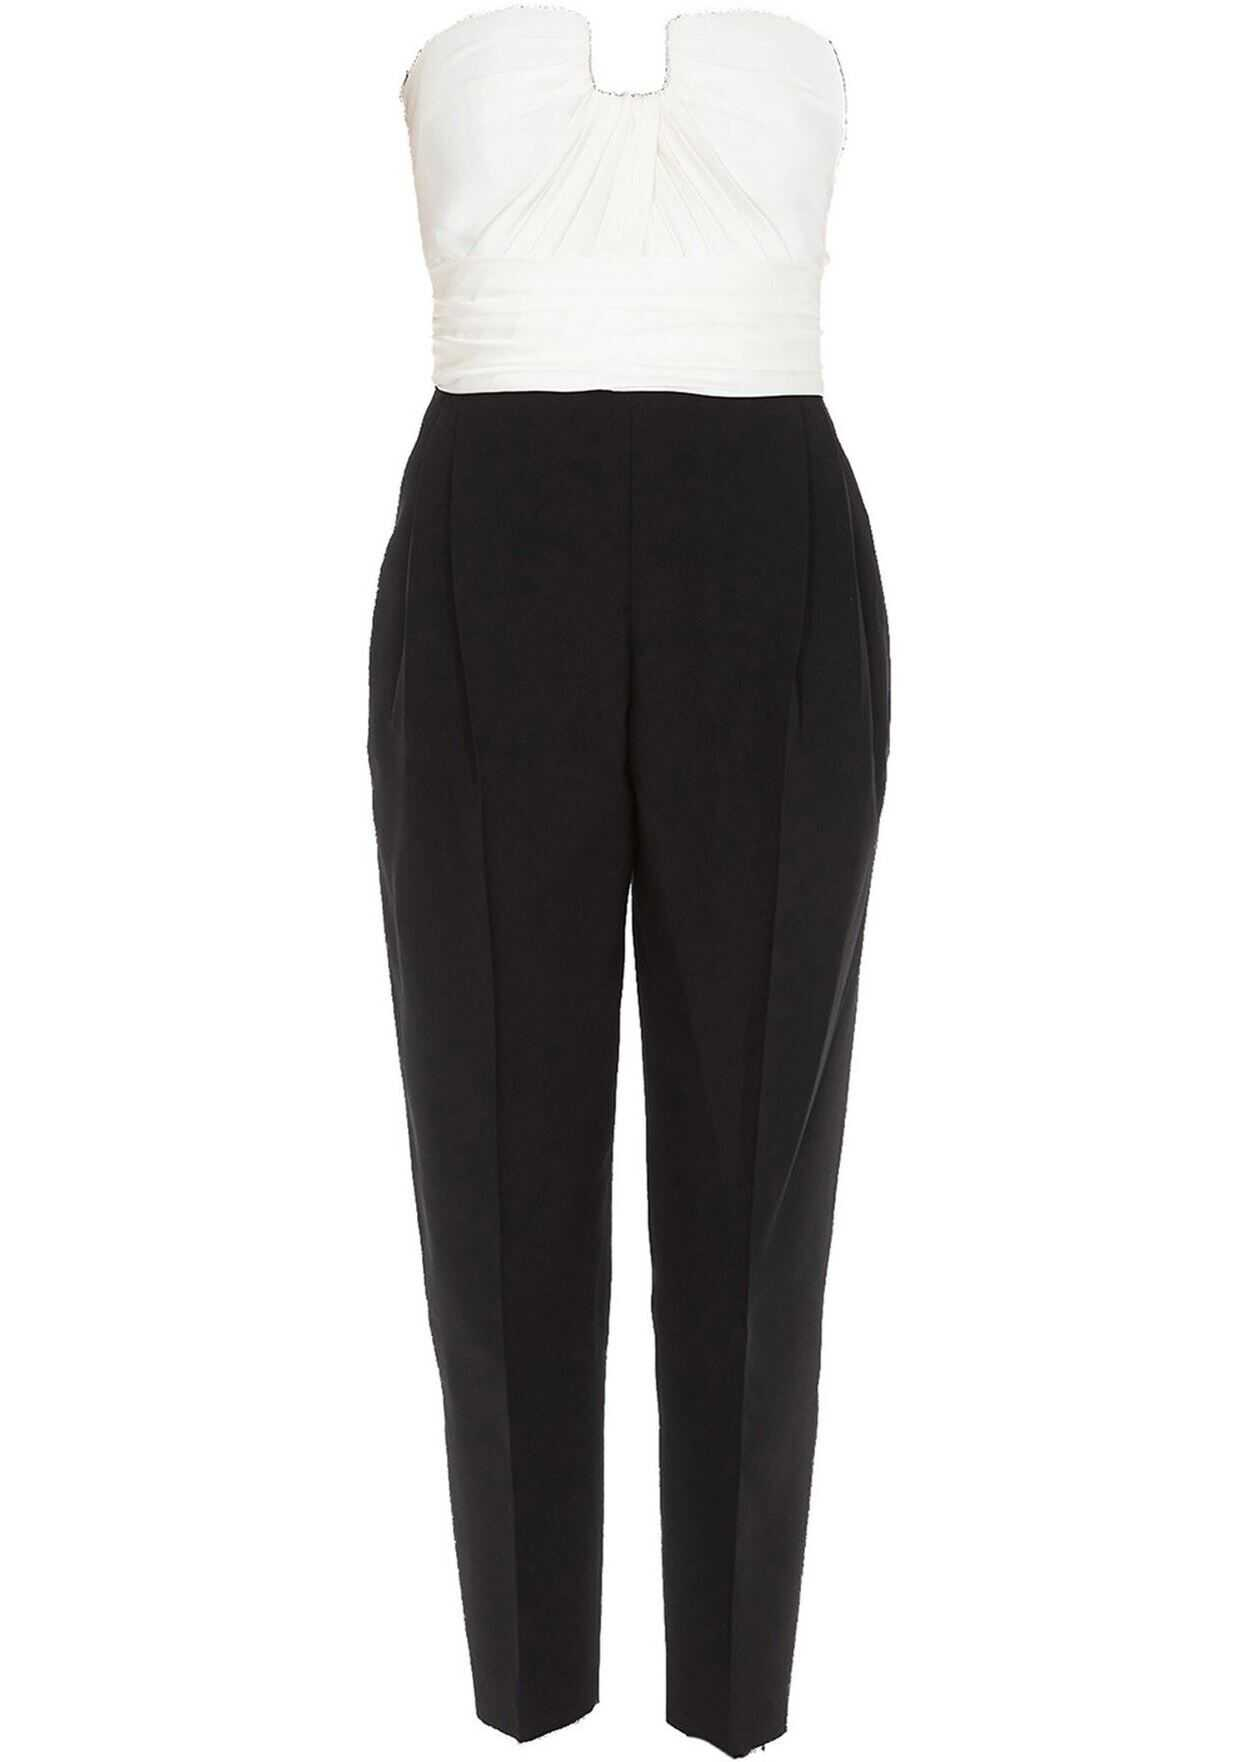 Alexander McQueen Wool And Silk Jumpsuit In Black And White Black